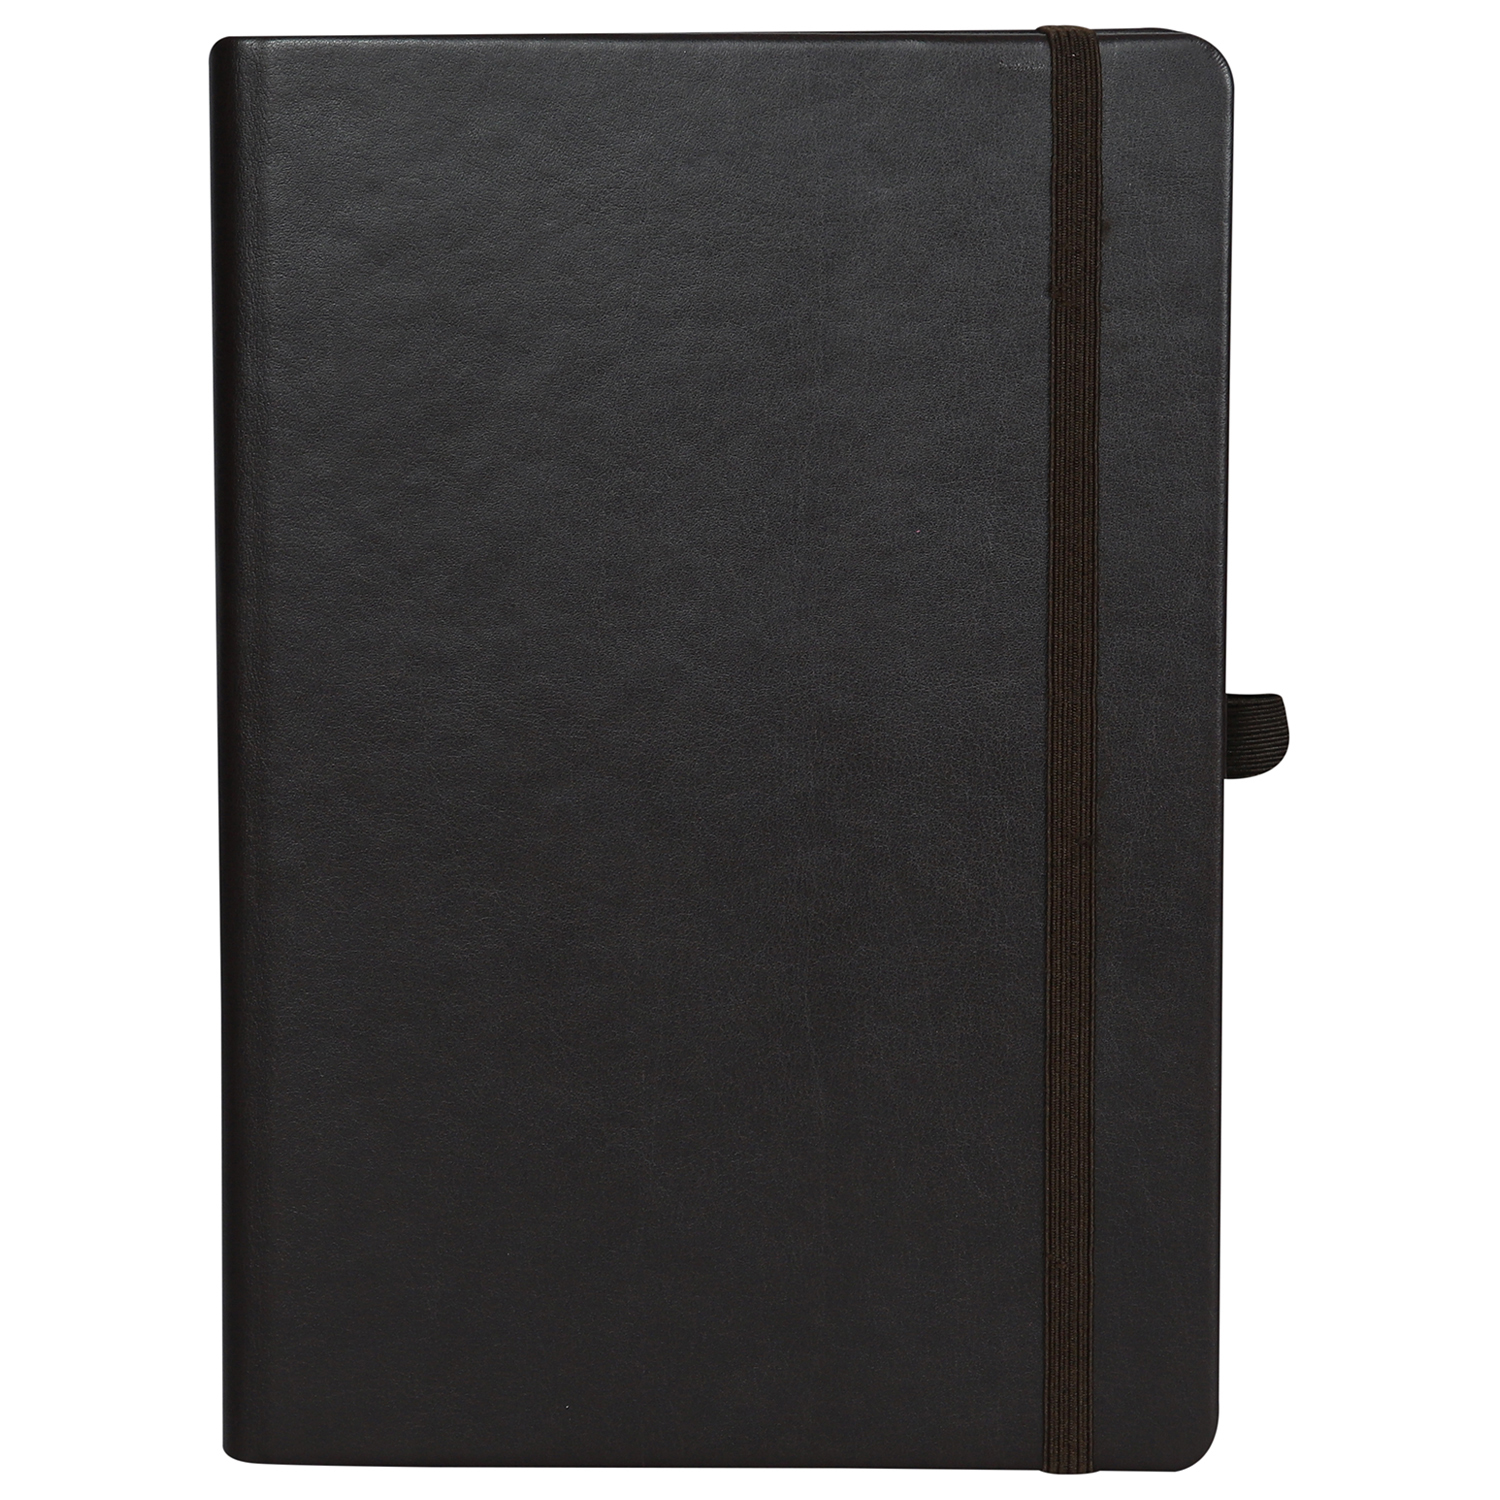 Personal Notes - A5 Size - Hard Bound Notebook with Elastic Band